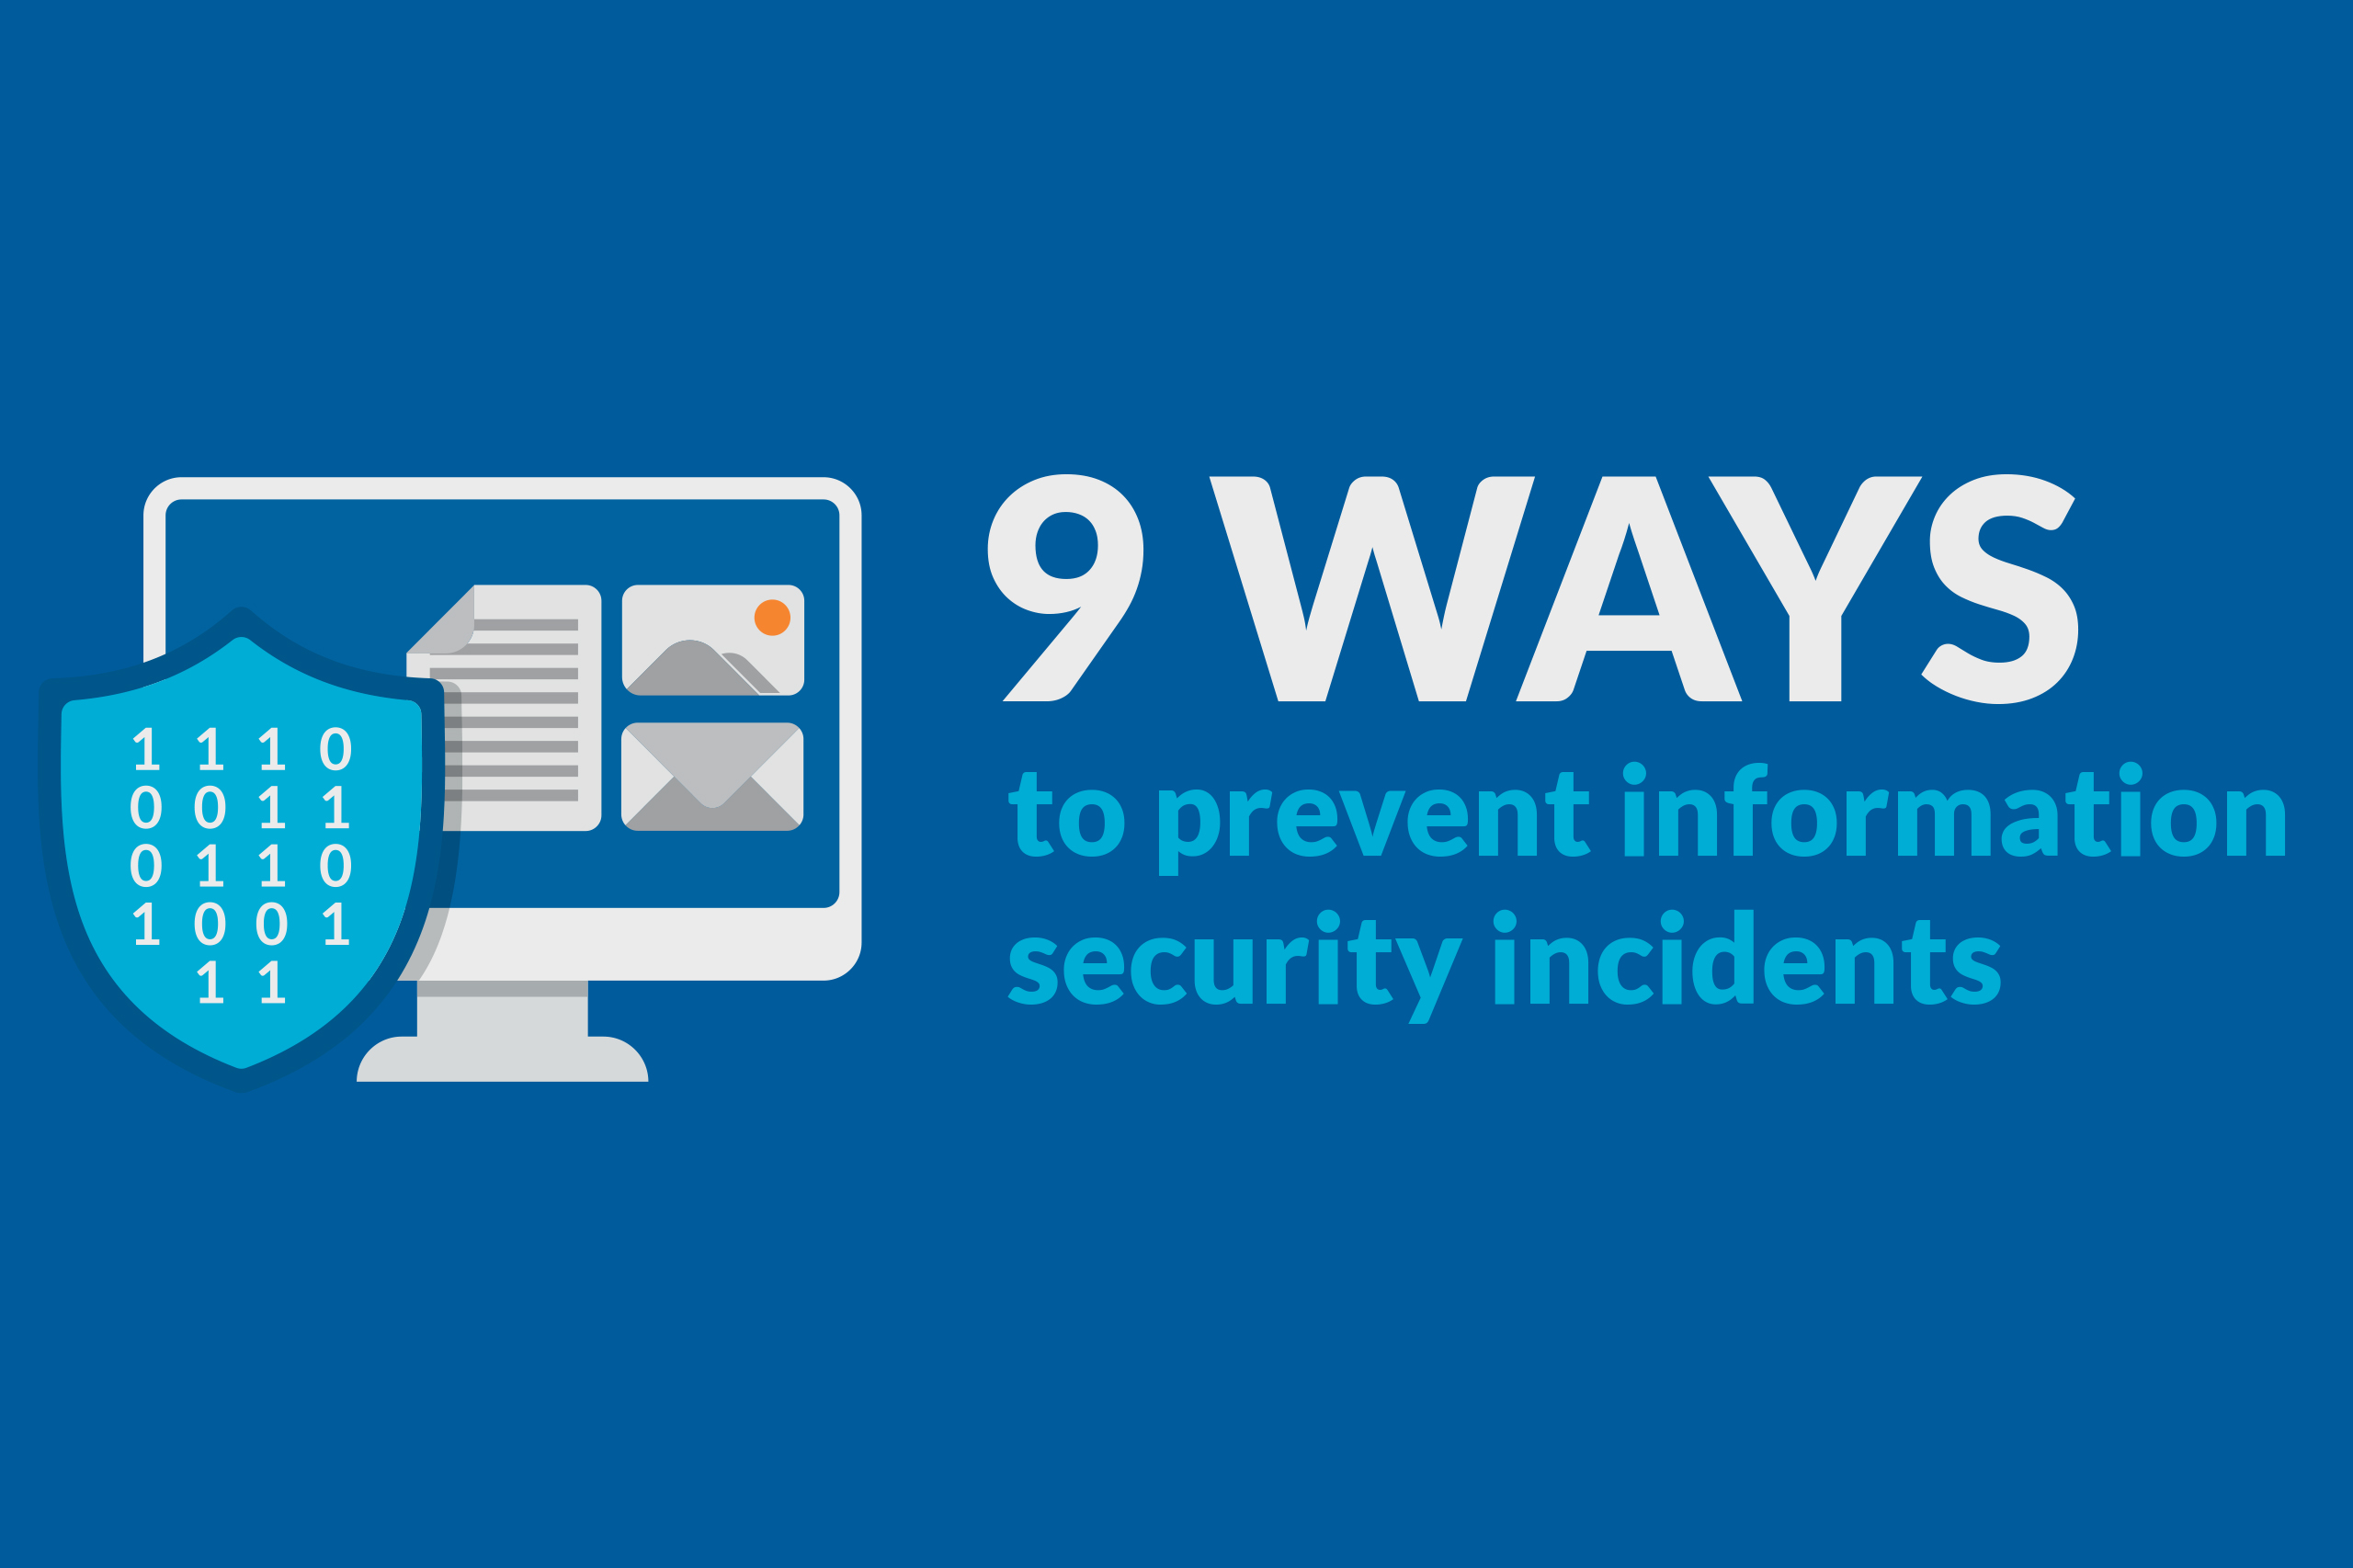 9 ways to prevent information security incidents